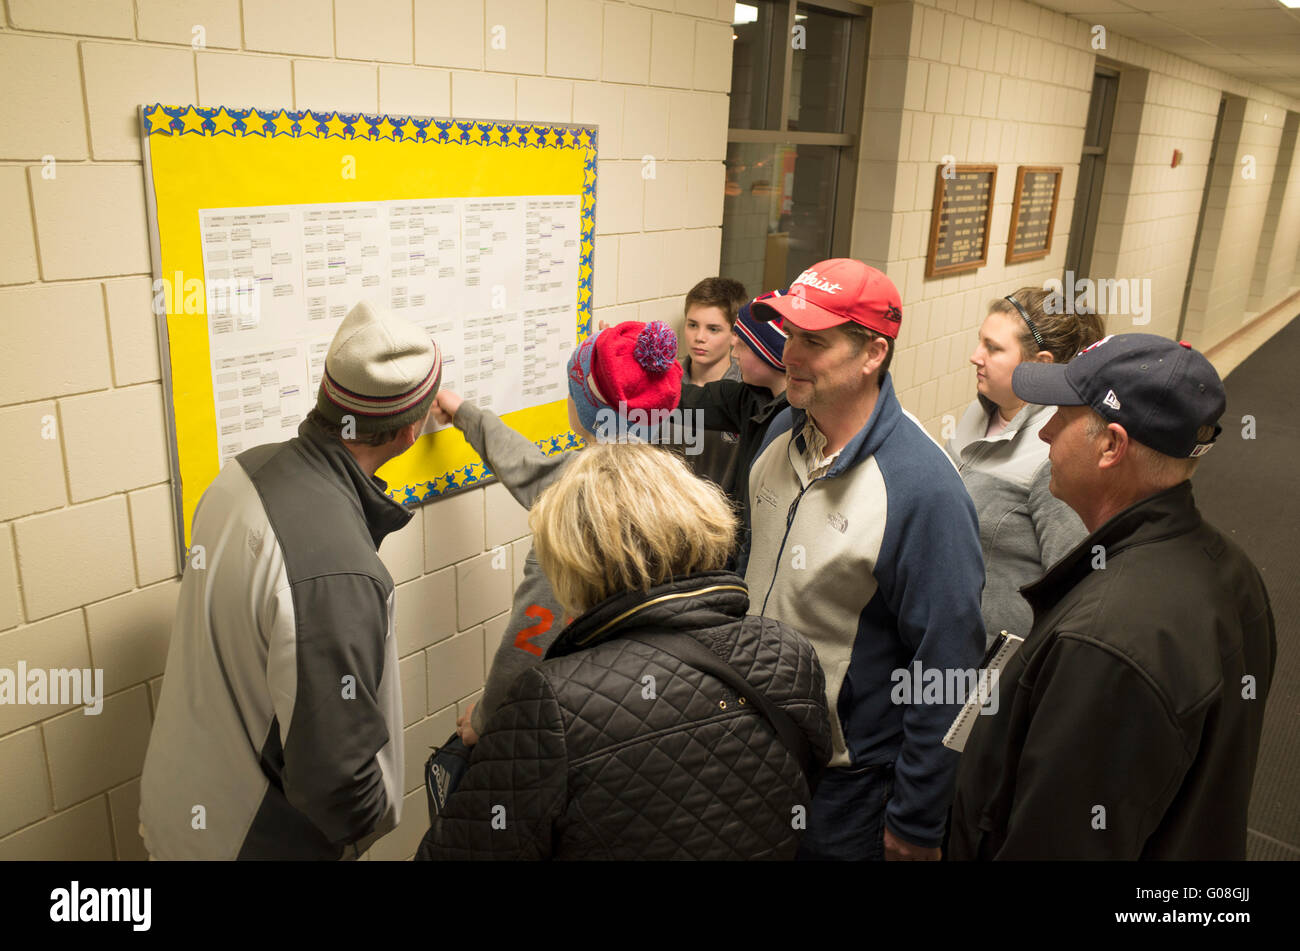 Parents and players gathered around tournament bracket win-loss playing schedule. St Paul Minnesota MN USA - Stock Image